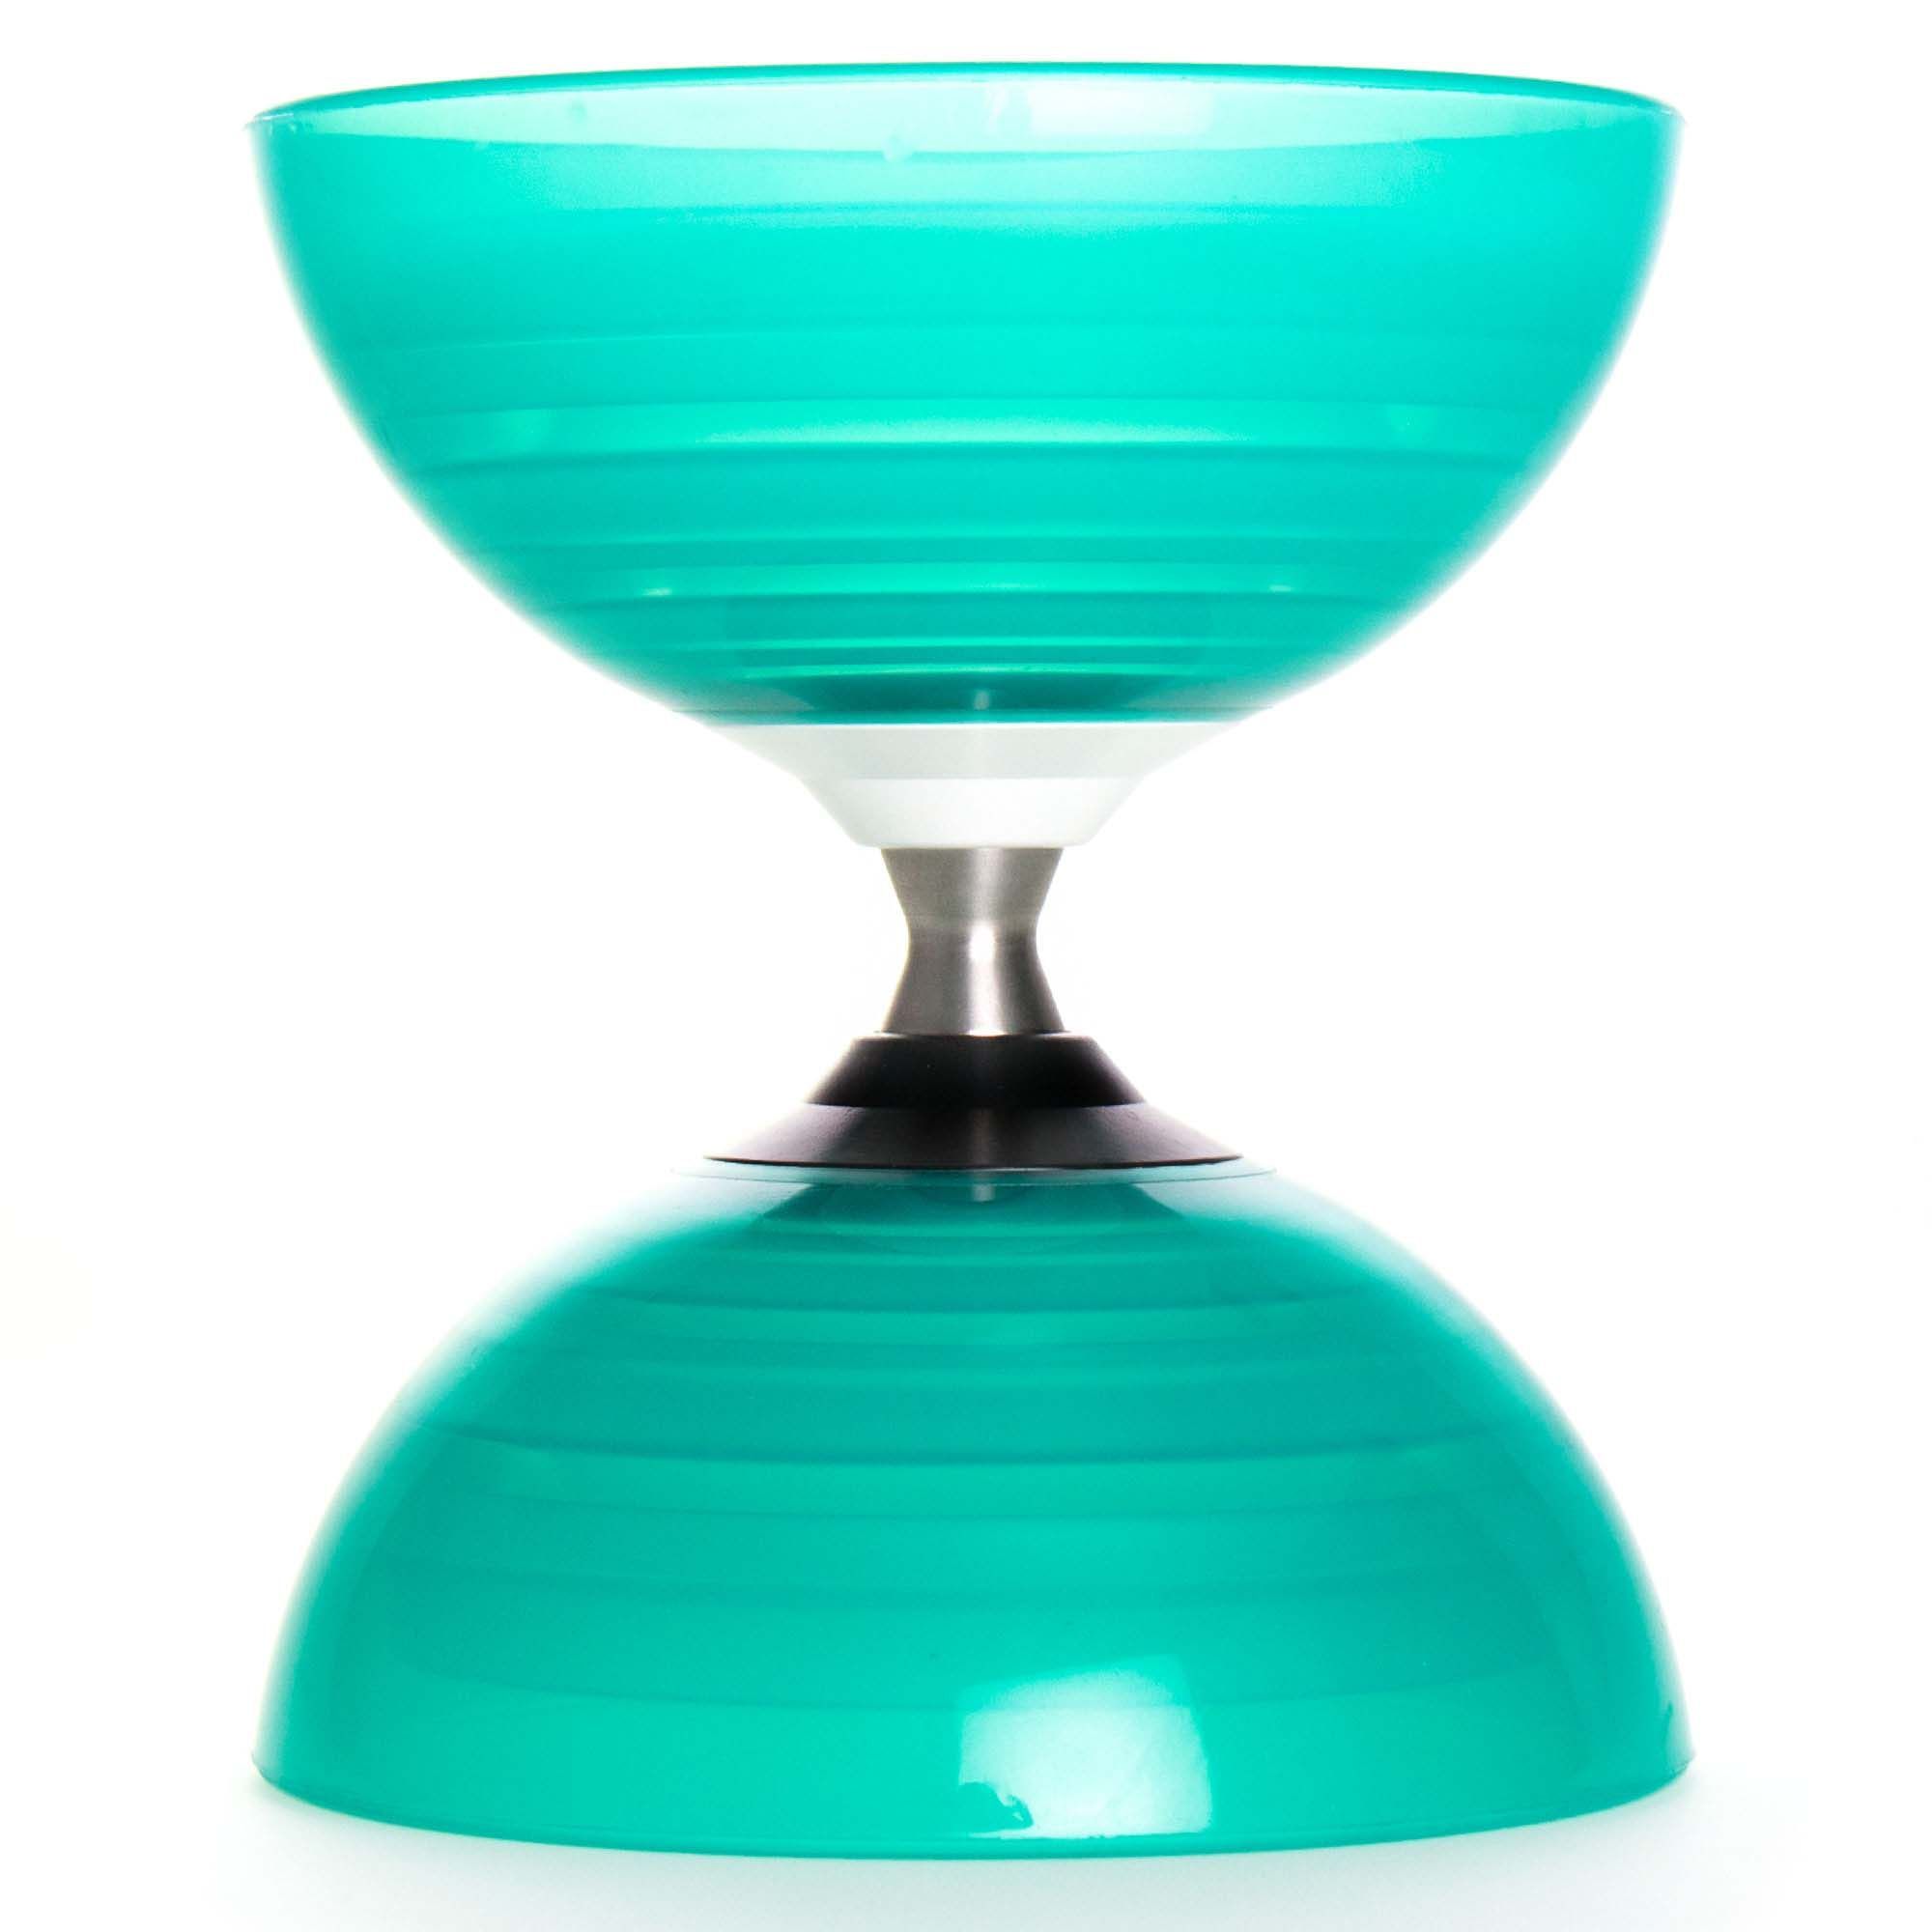 henry s beach diabolo with free hub turquoise 1